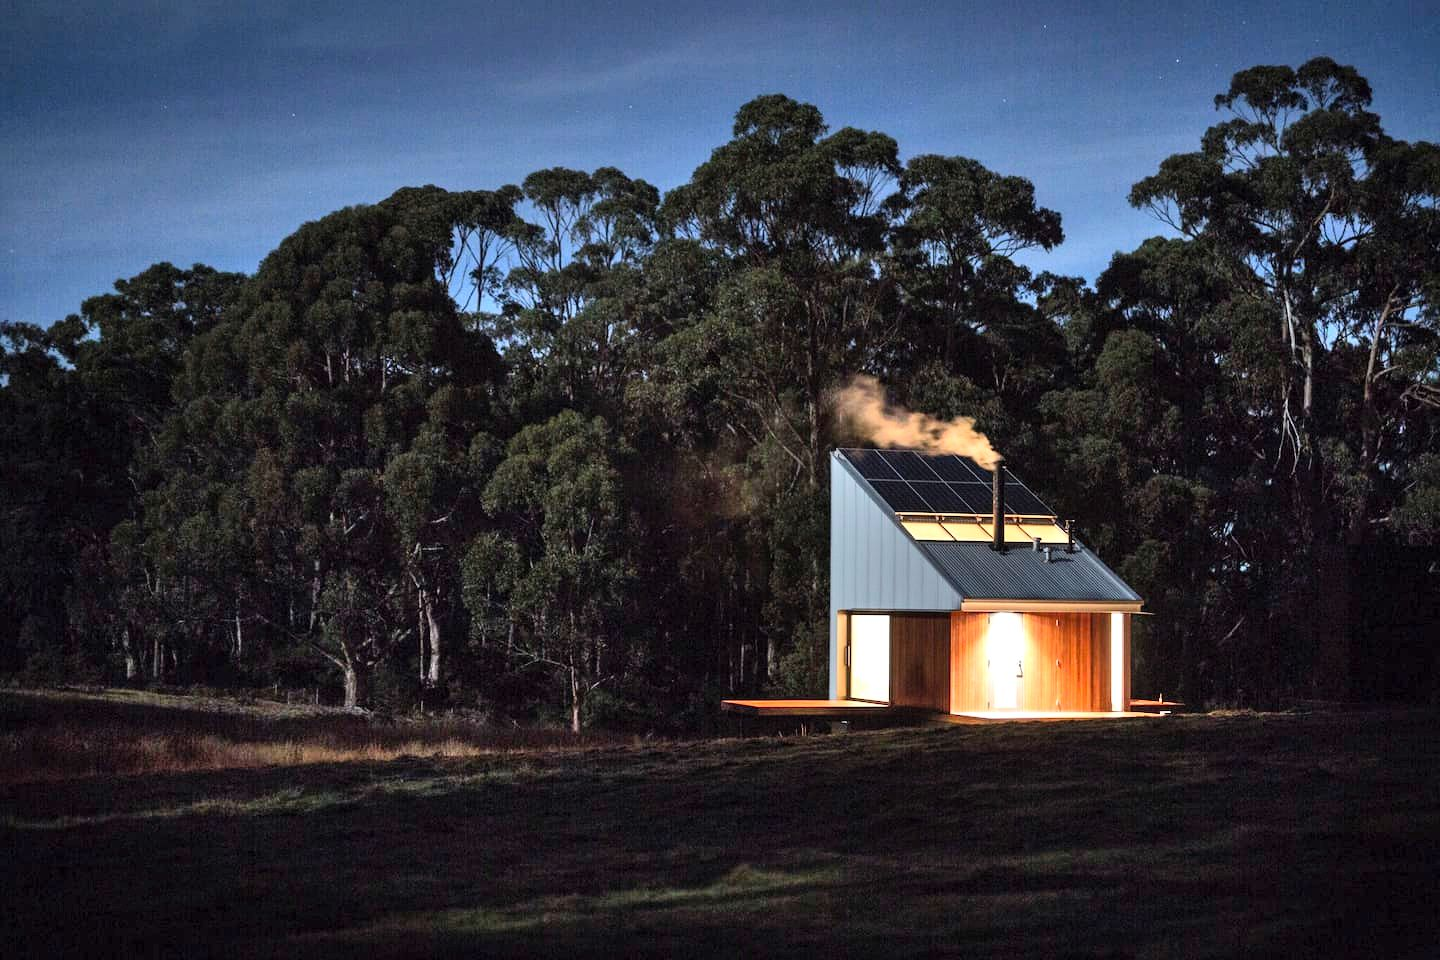 Tiny house accommodation: Bruny Island glamping